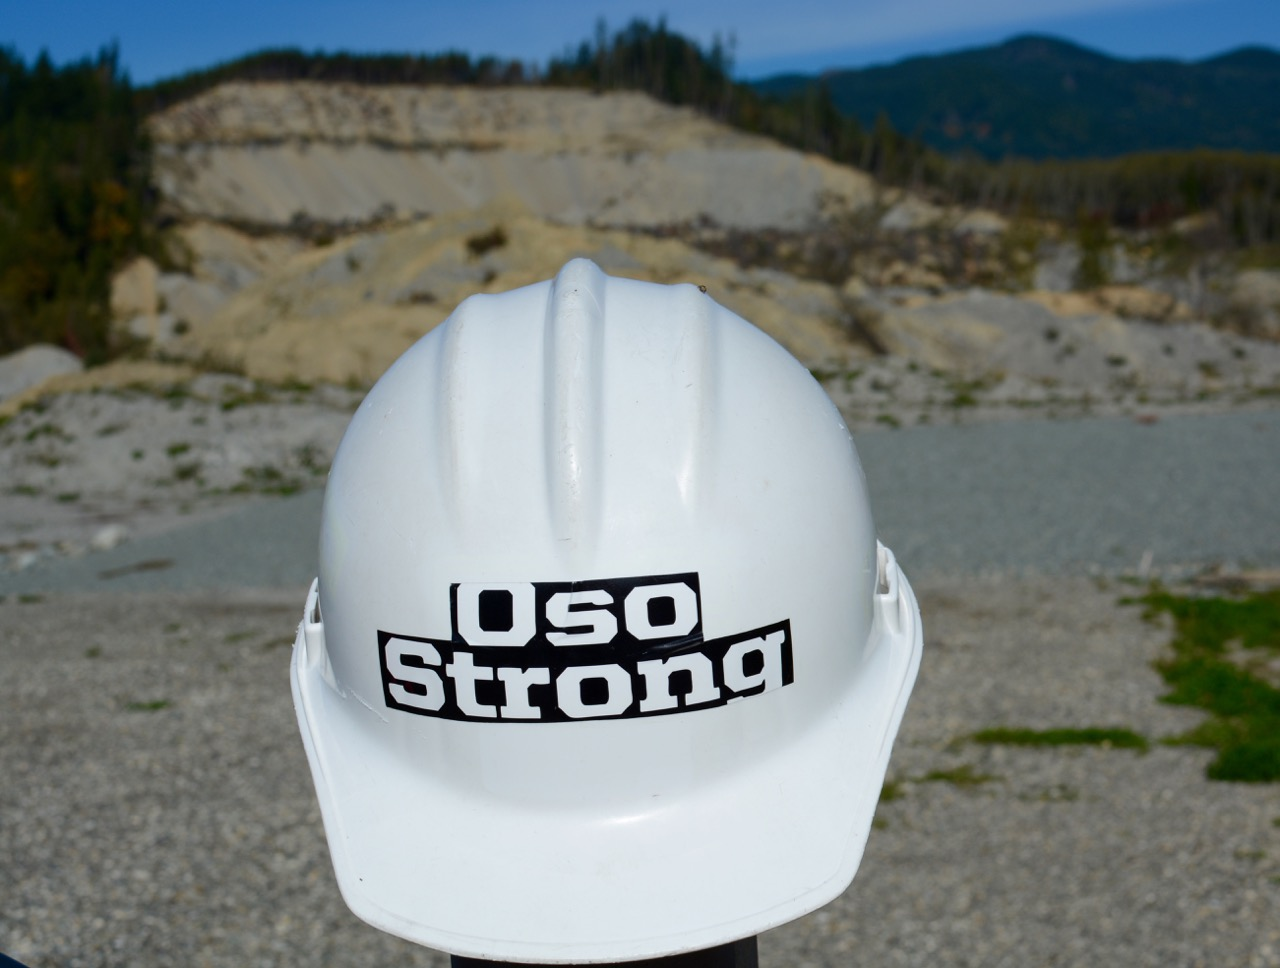 Oso_Strong